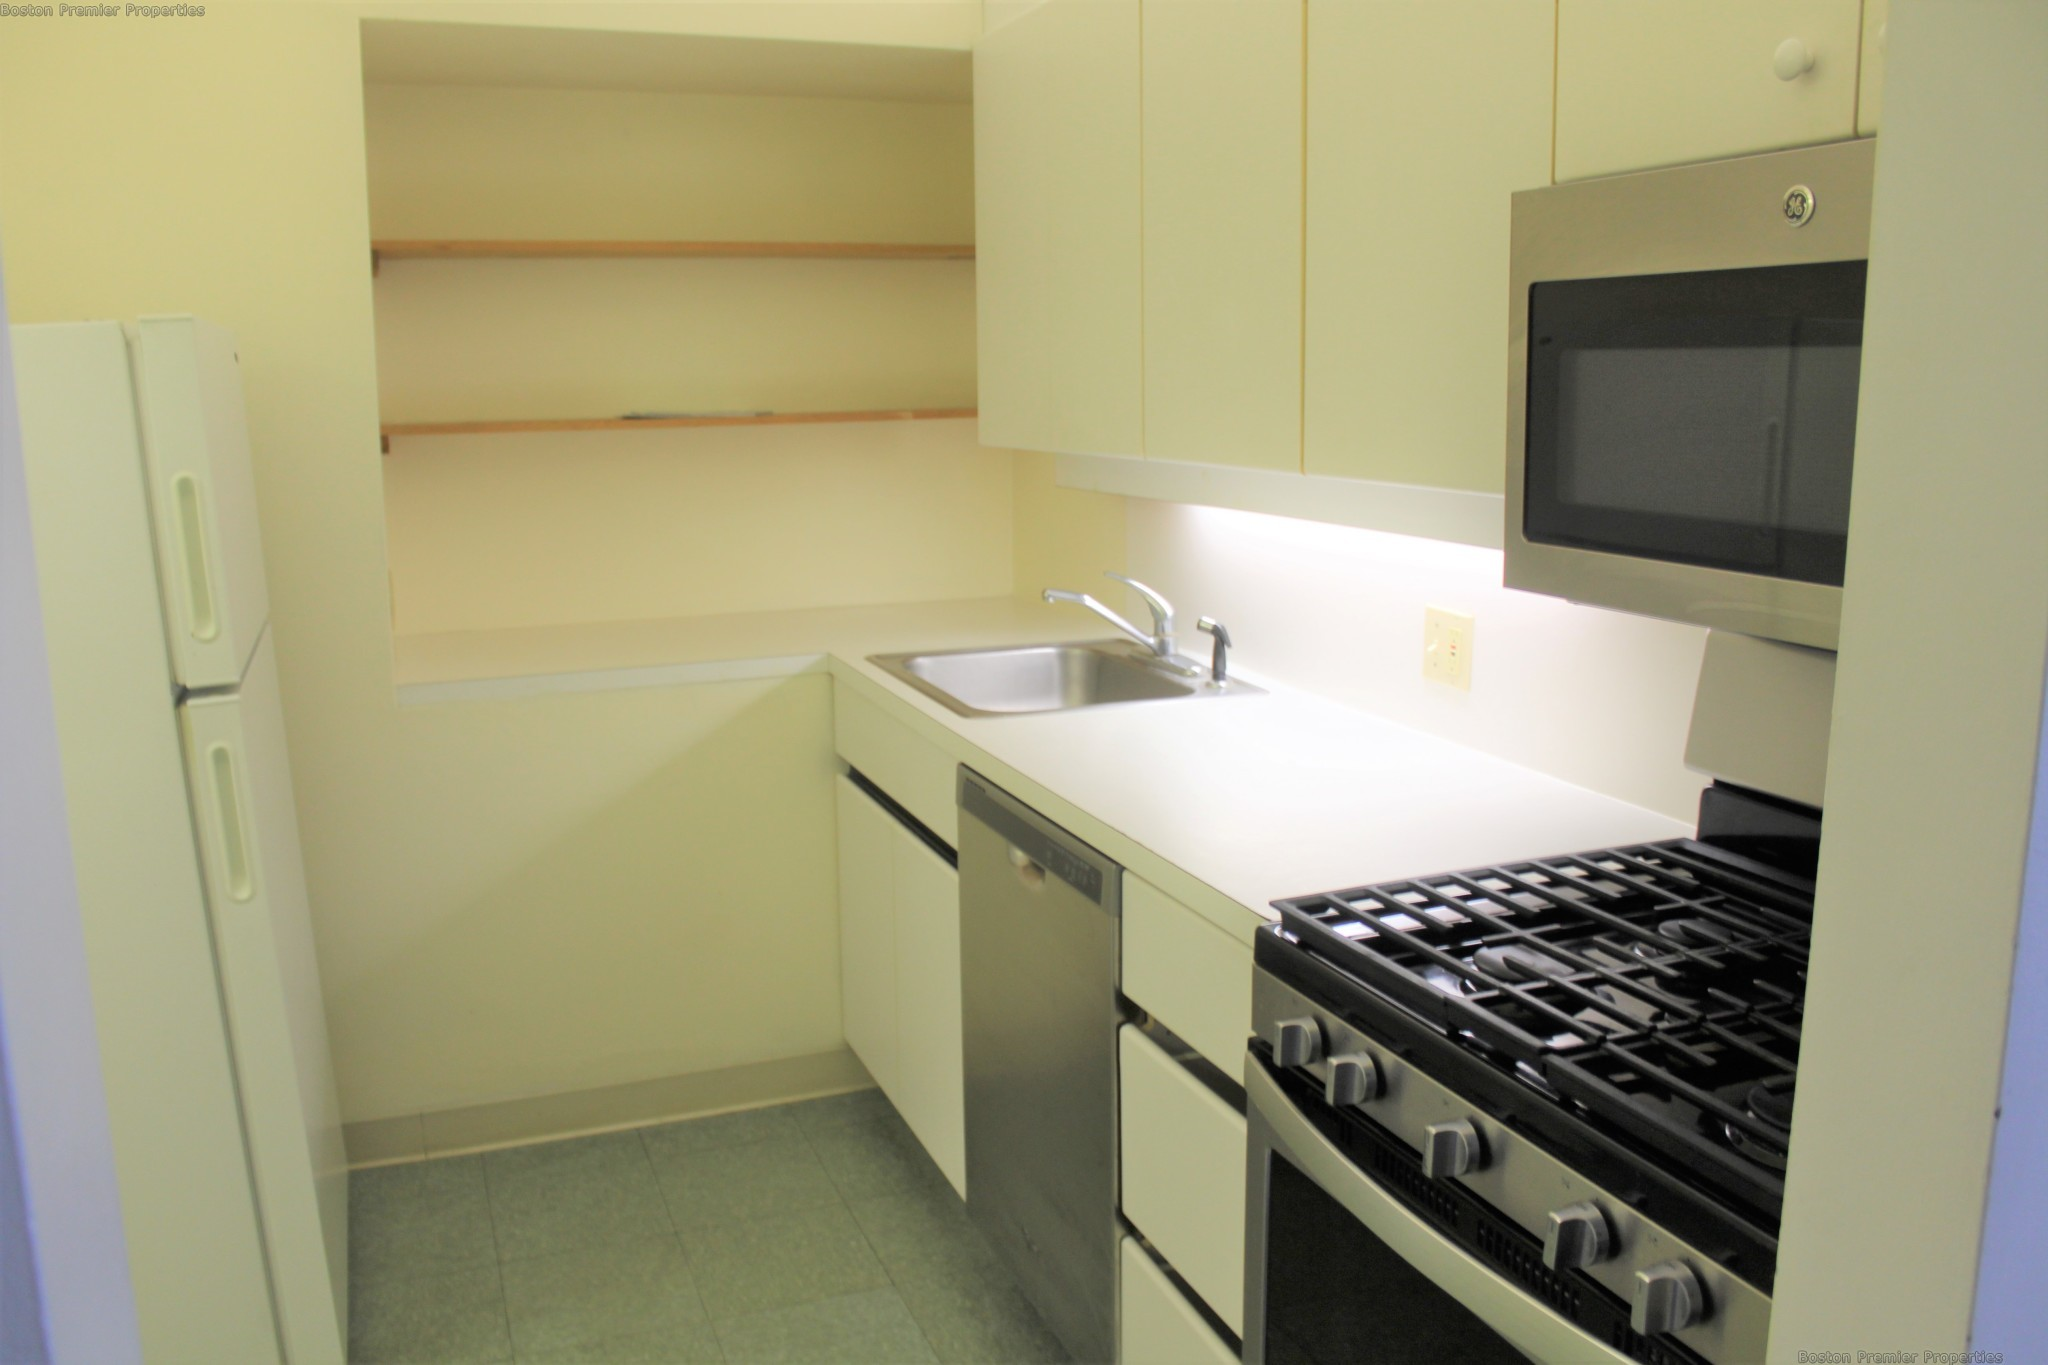 2 Beds, 1 Bath apartment in Weymouth for $2,300